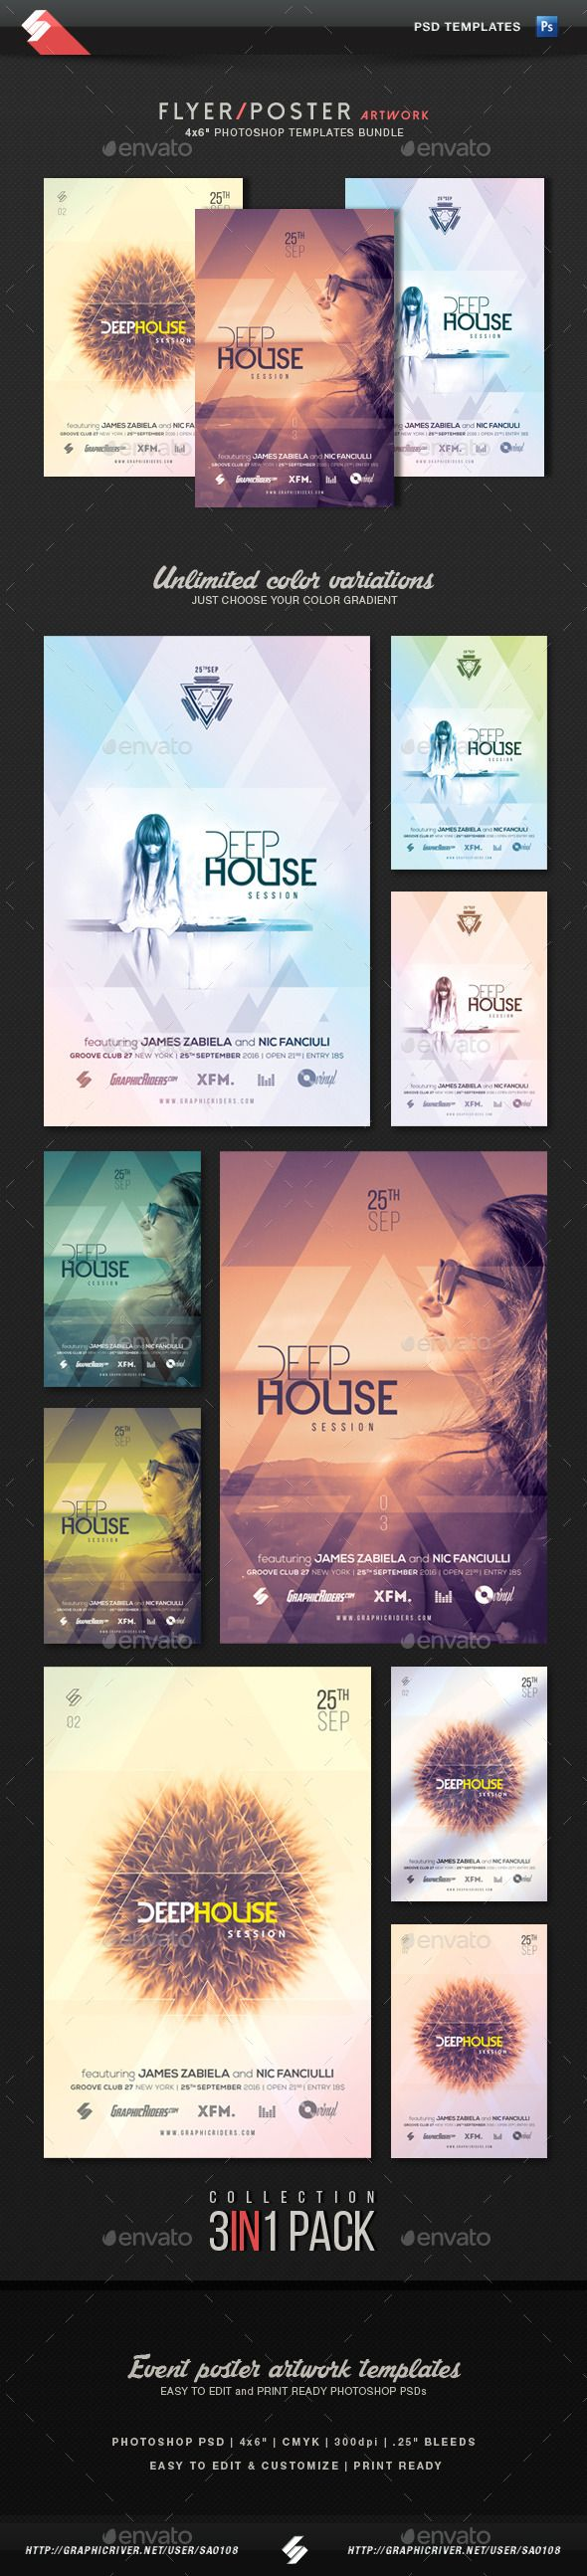 Deep House Session - Event Flyer Template #design Download: http://graphicriver.net/item/deep-house-session-event-flyer-templates-bundle/12470212?ref=ksioks